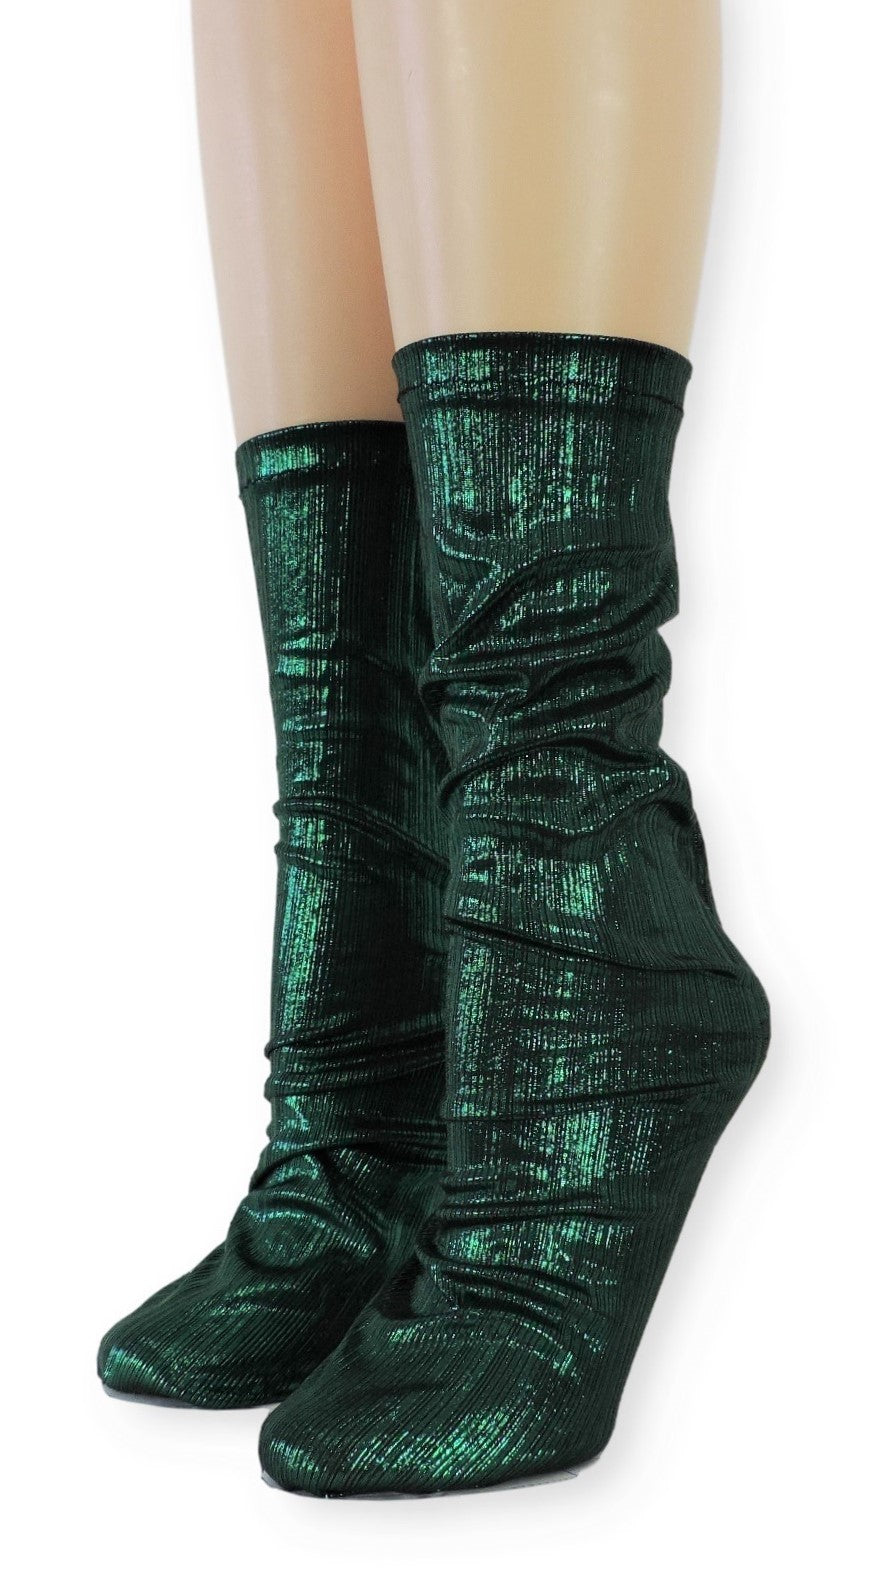 Myrtle Reflective Socks - Global Trendz Fashion®